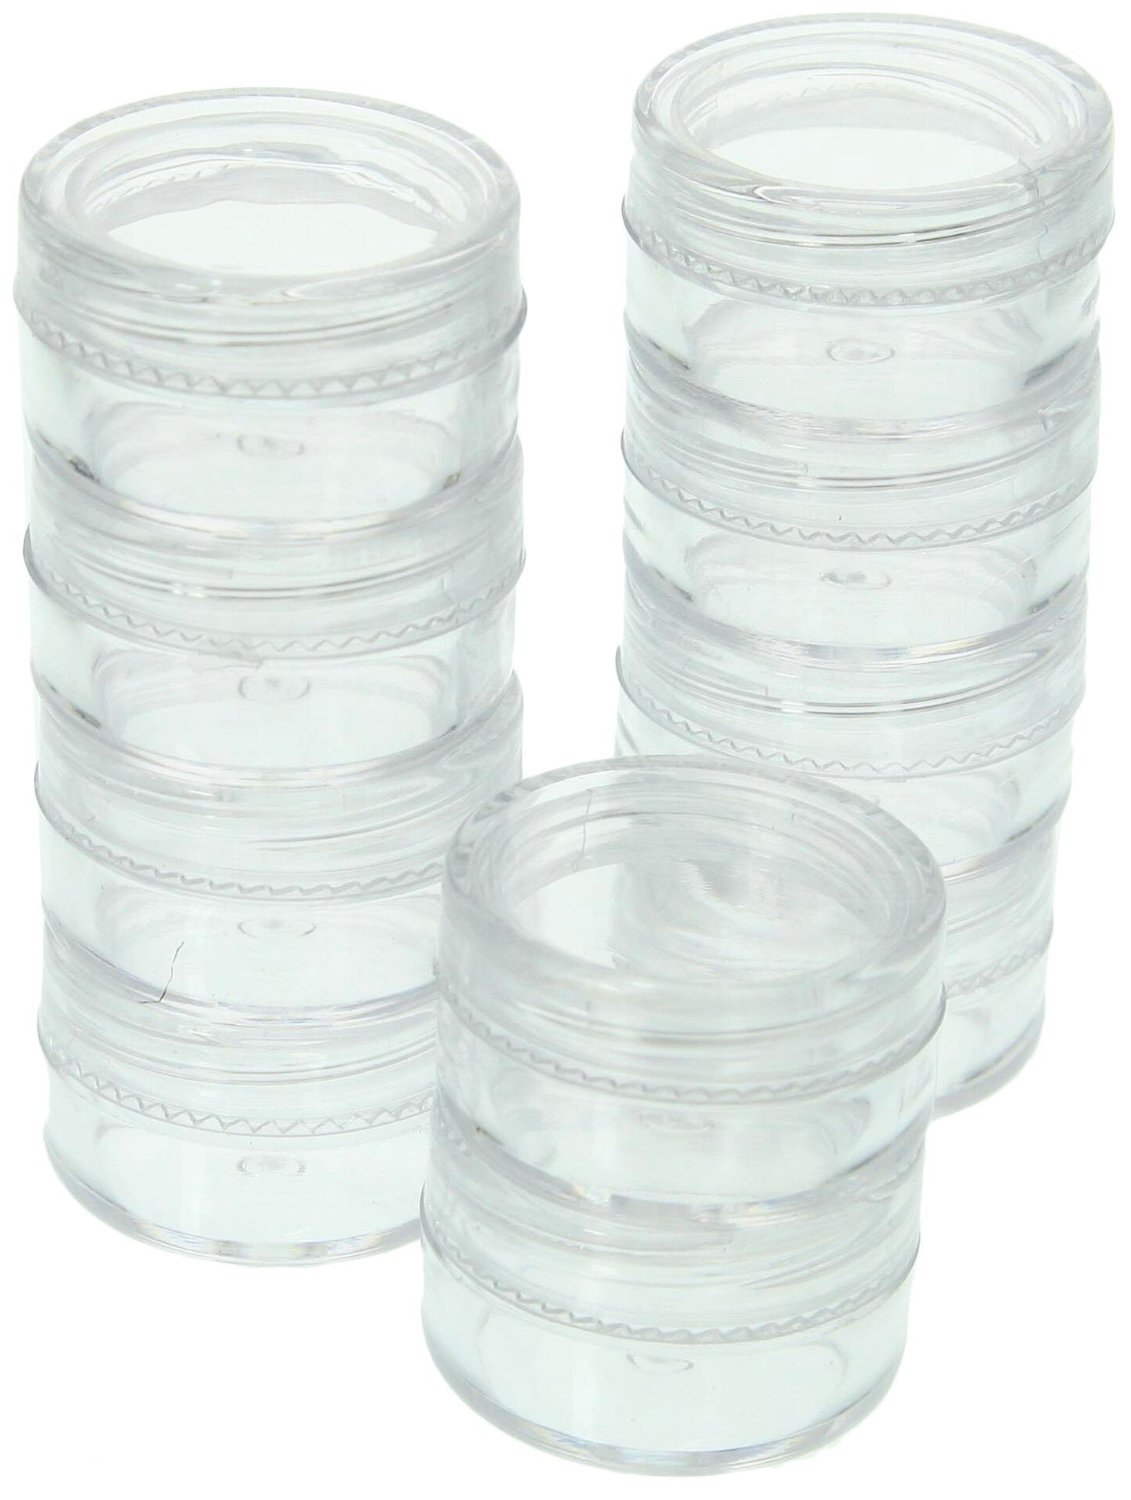 SE 87449BB 10-Piece Small Round Plastic Storage Container Set SDD2-87449BB